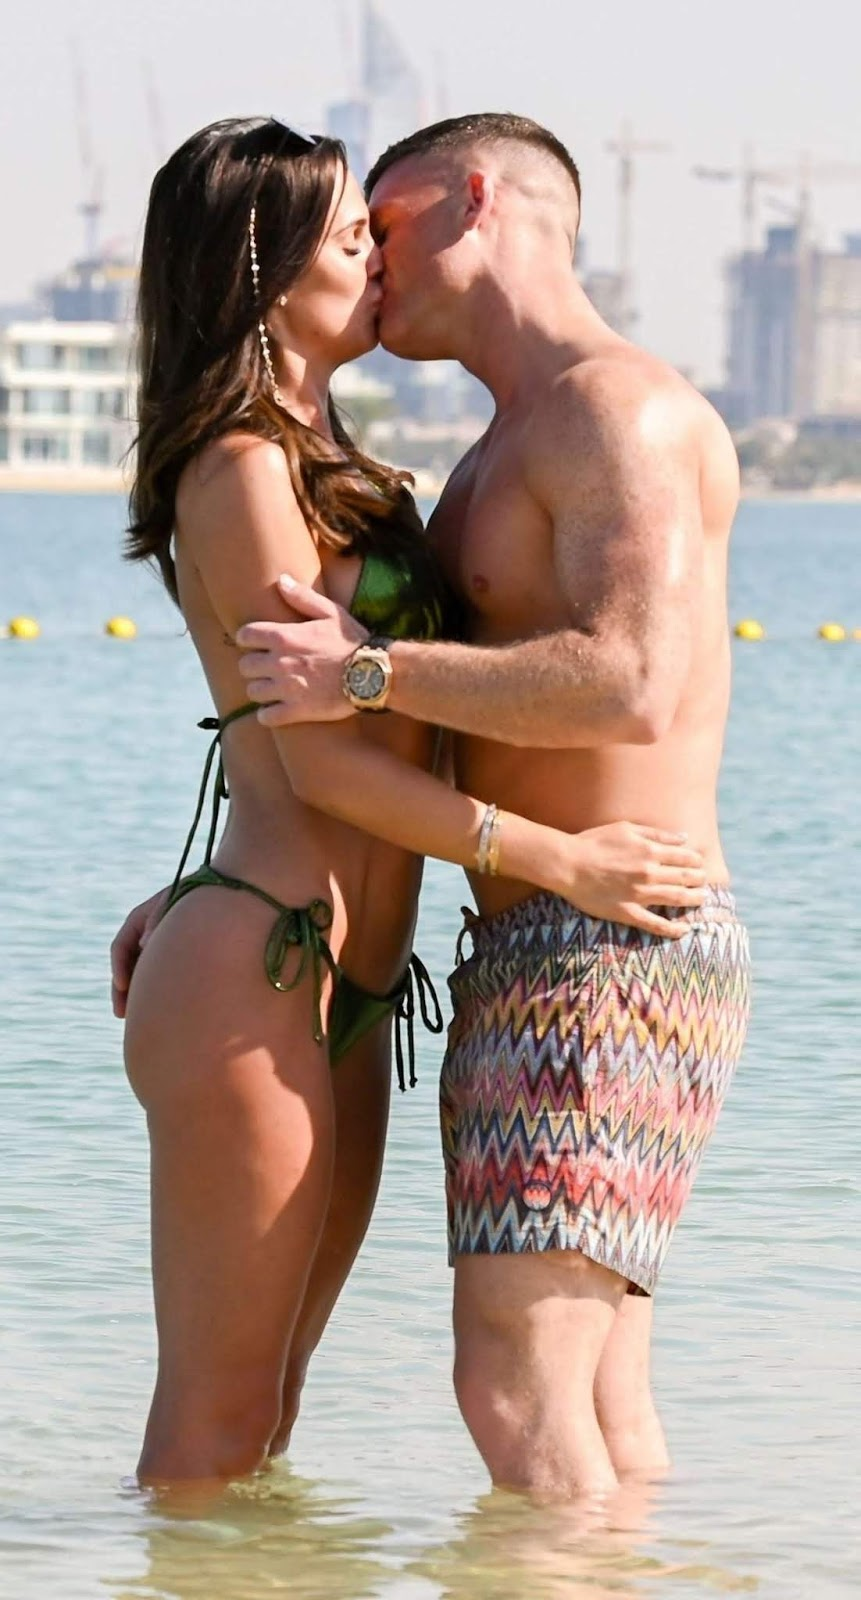 Danielle Lloyd displays the fruits of her surgeon's labour while getting steamy with husband Michael O'Neill in Dubai... after undergoing a boob job, liposuction and a bum lift